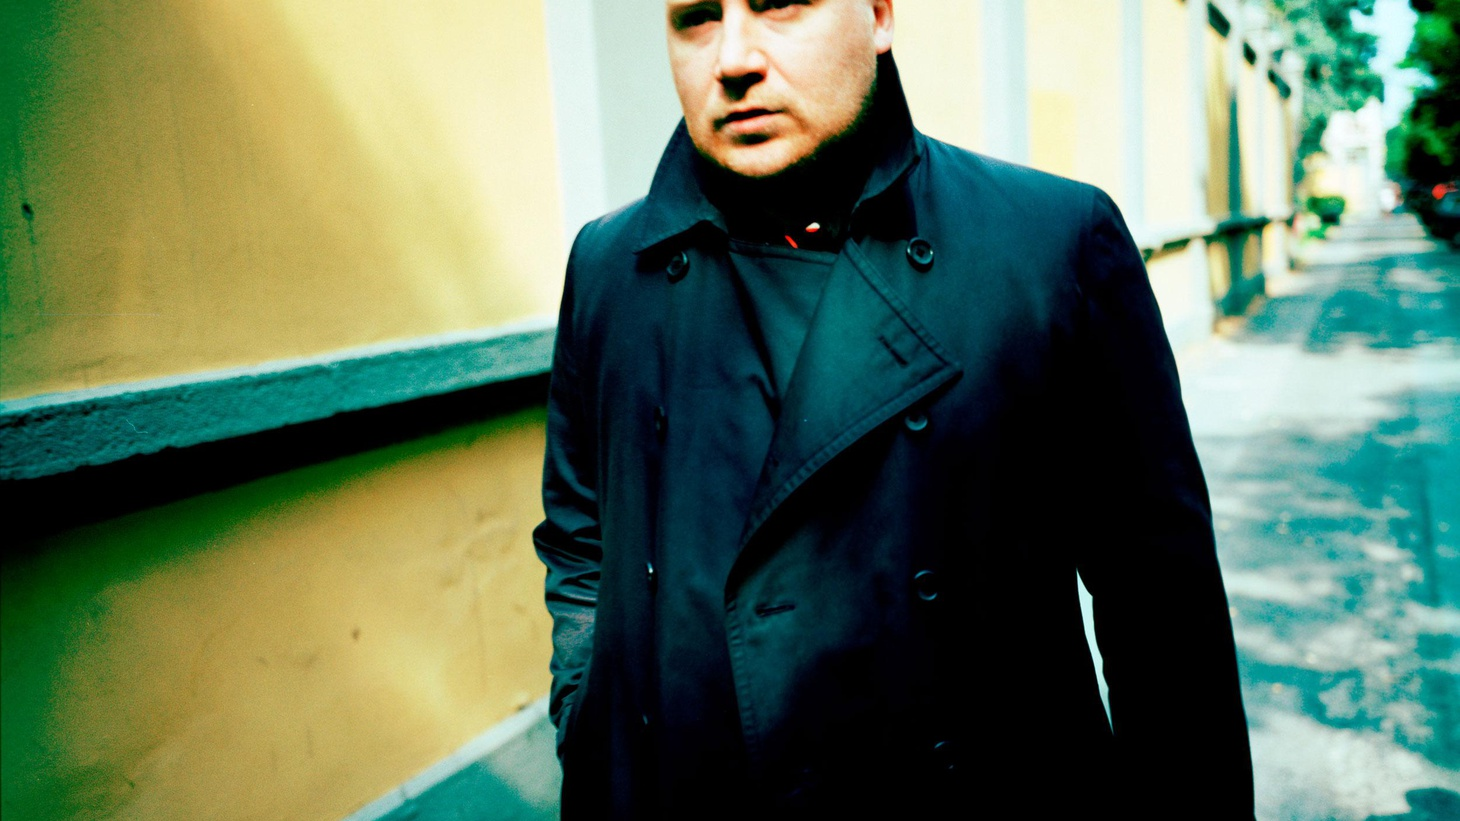 Icelandic pianist Jóhann Jóhannsson composes a range of elegant music from minimalist to baroque with cinematic overtones.